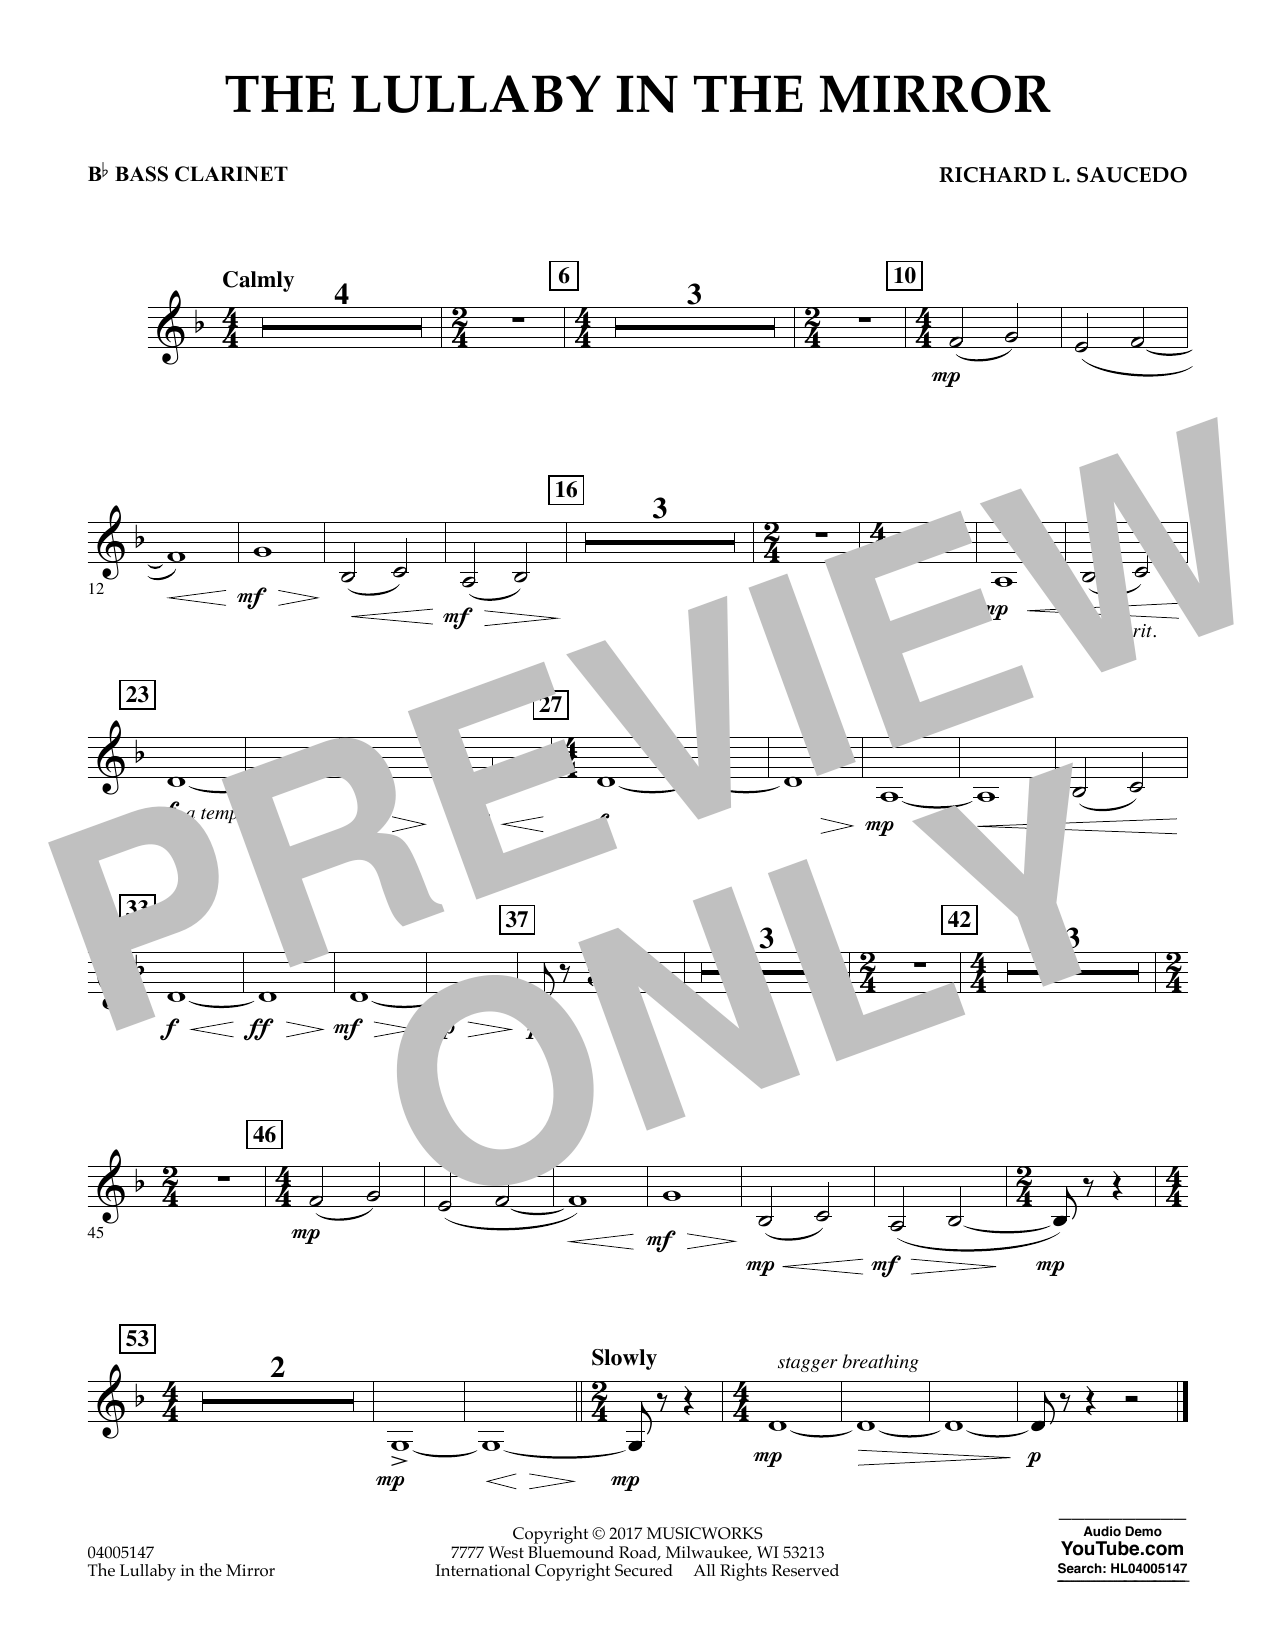 Richard L. Saucedo The Lullaby in the Mirror - Bb Bass Clarinet sheet music notes and chords. Download Printable PDF.